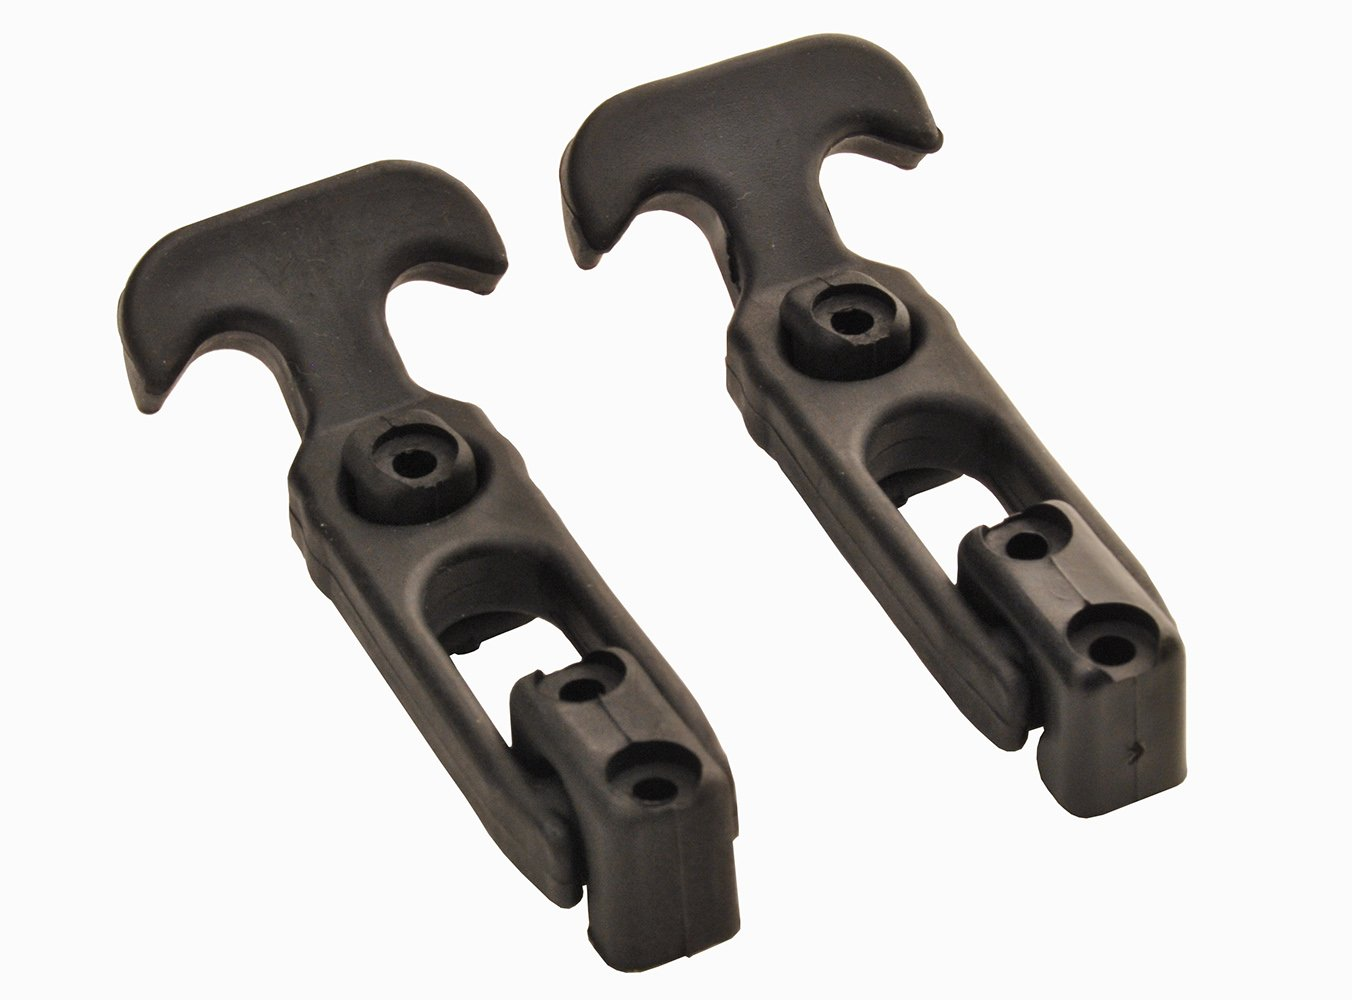 Accessbuy Flexible T-Handle Draw Latches for Cooler, Golf Cart or Tool Box (2 Pack)